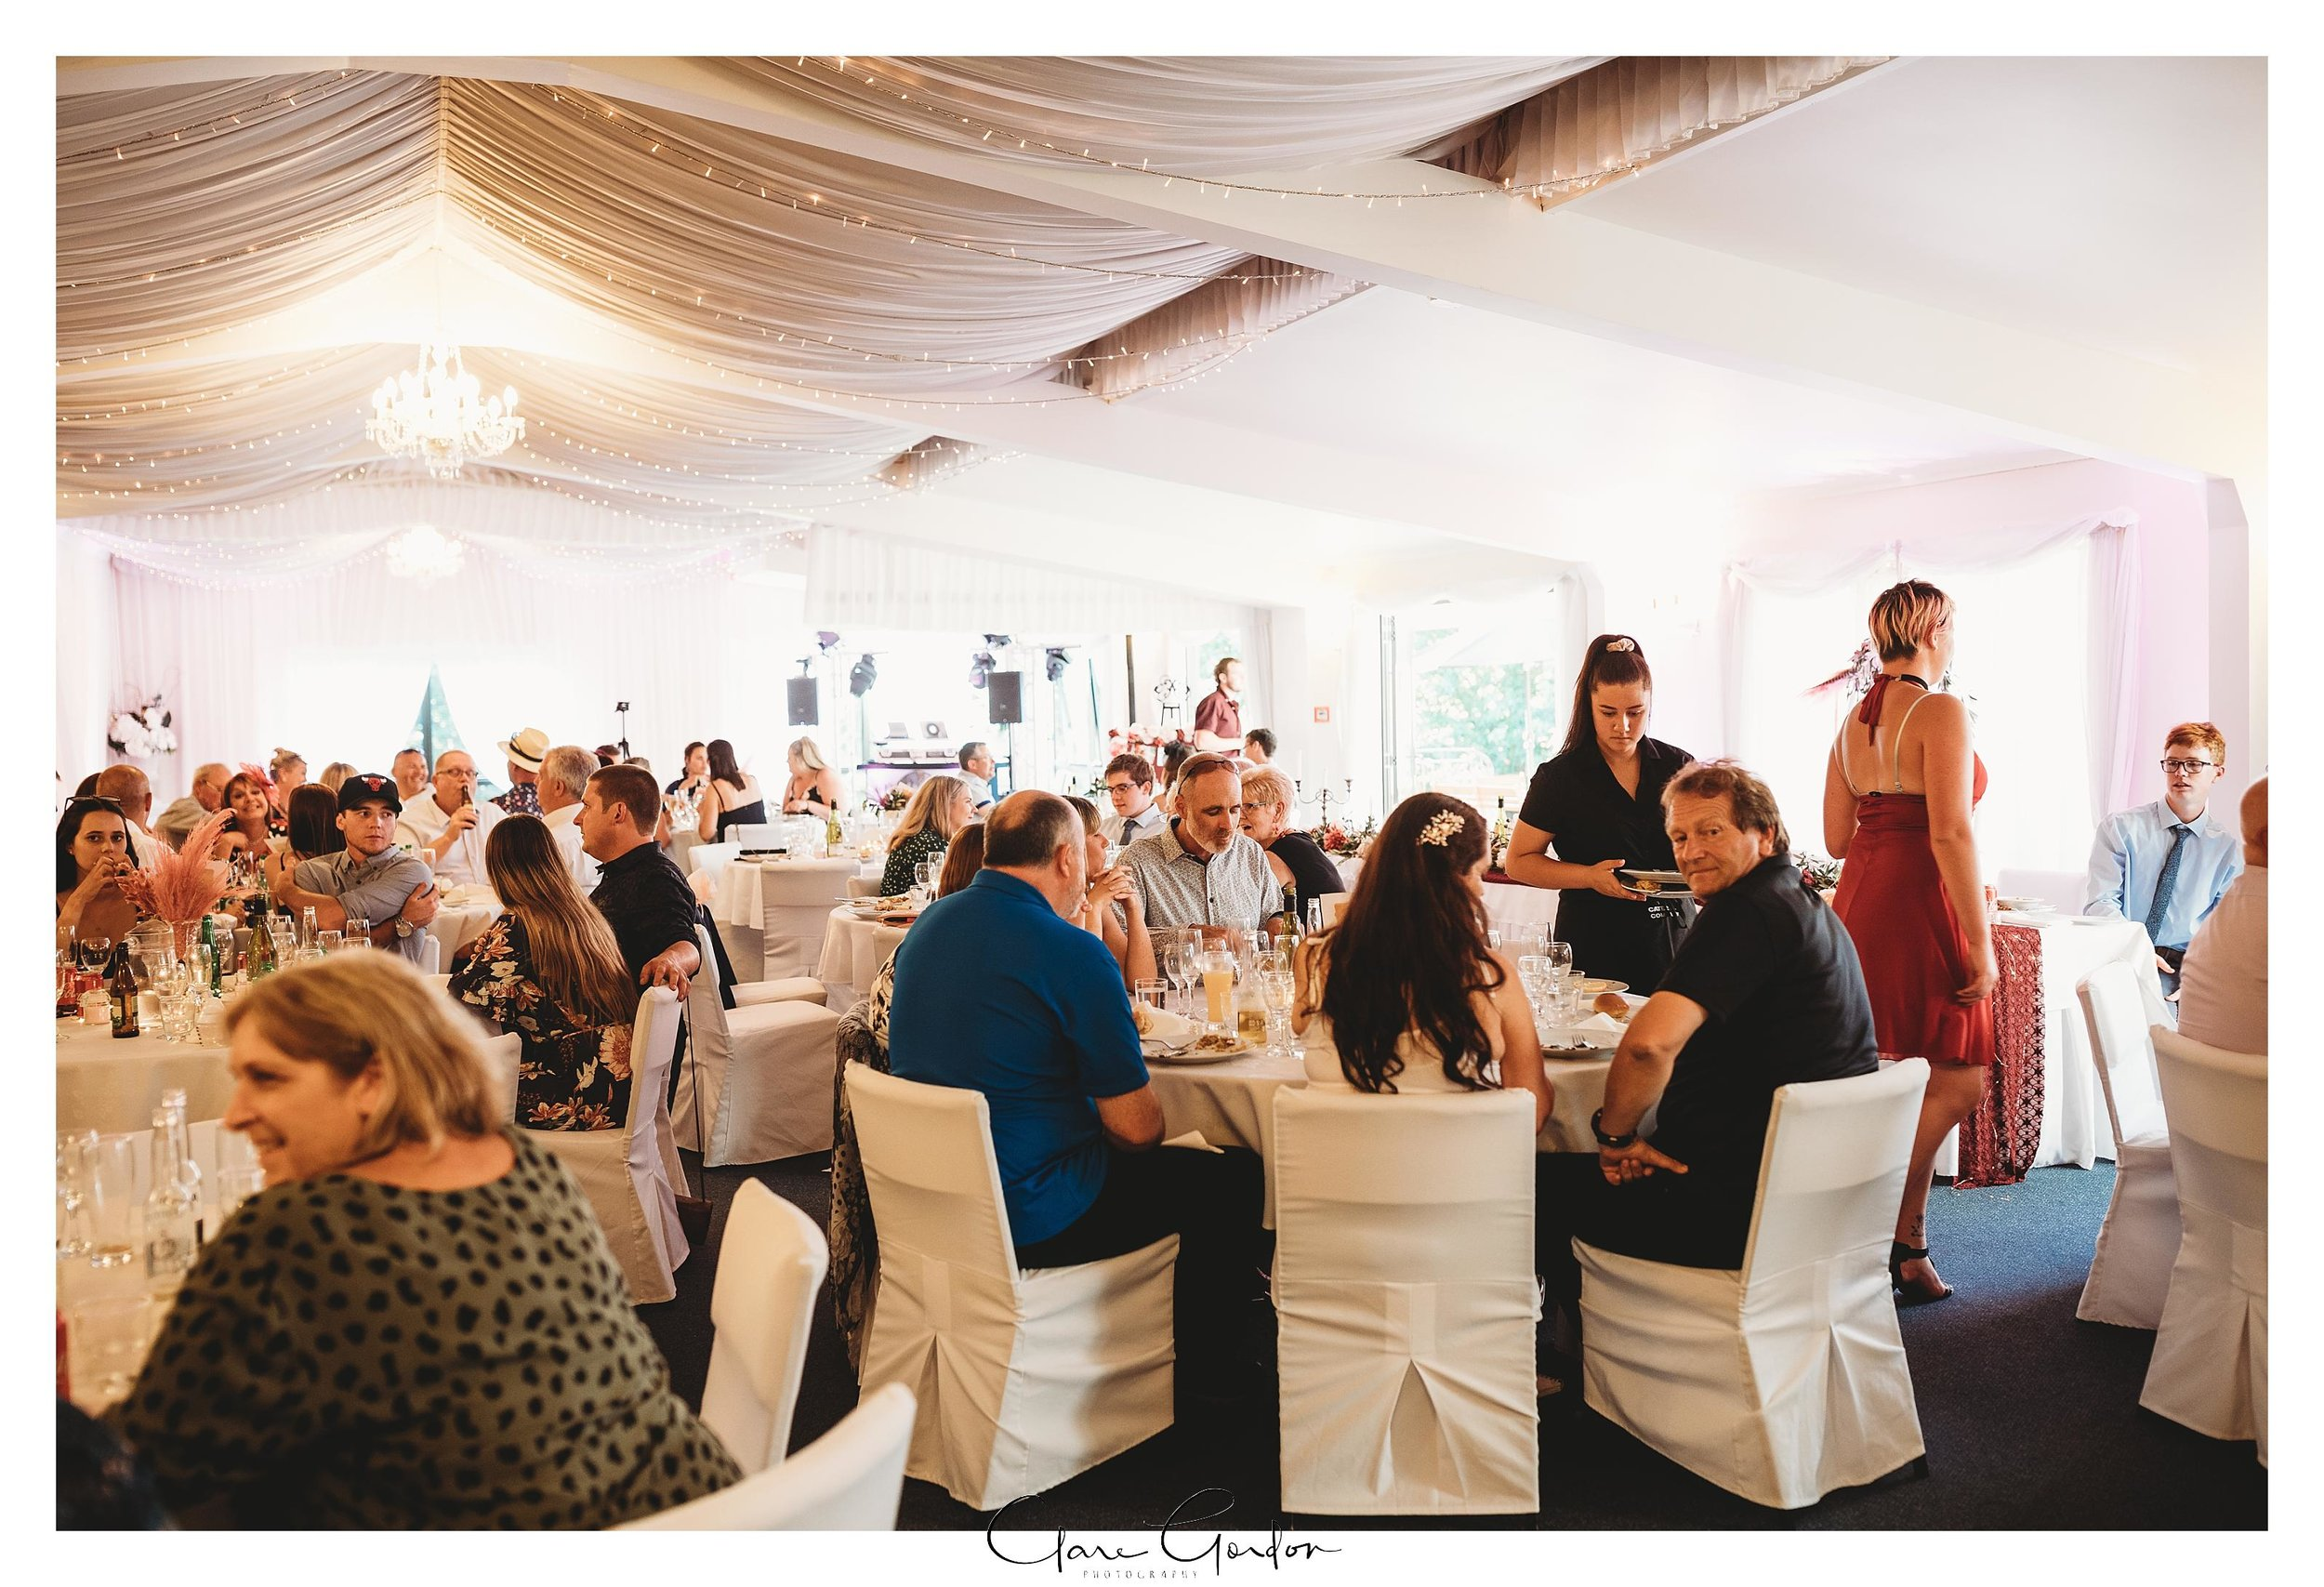 Charlemagne-Lodge-Tauranga-wedding-photo (120).jpg